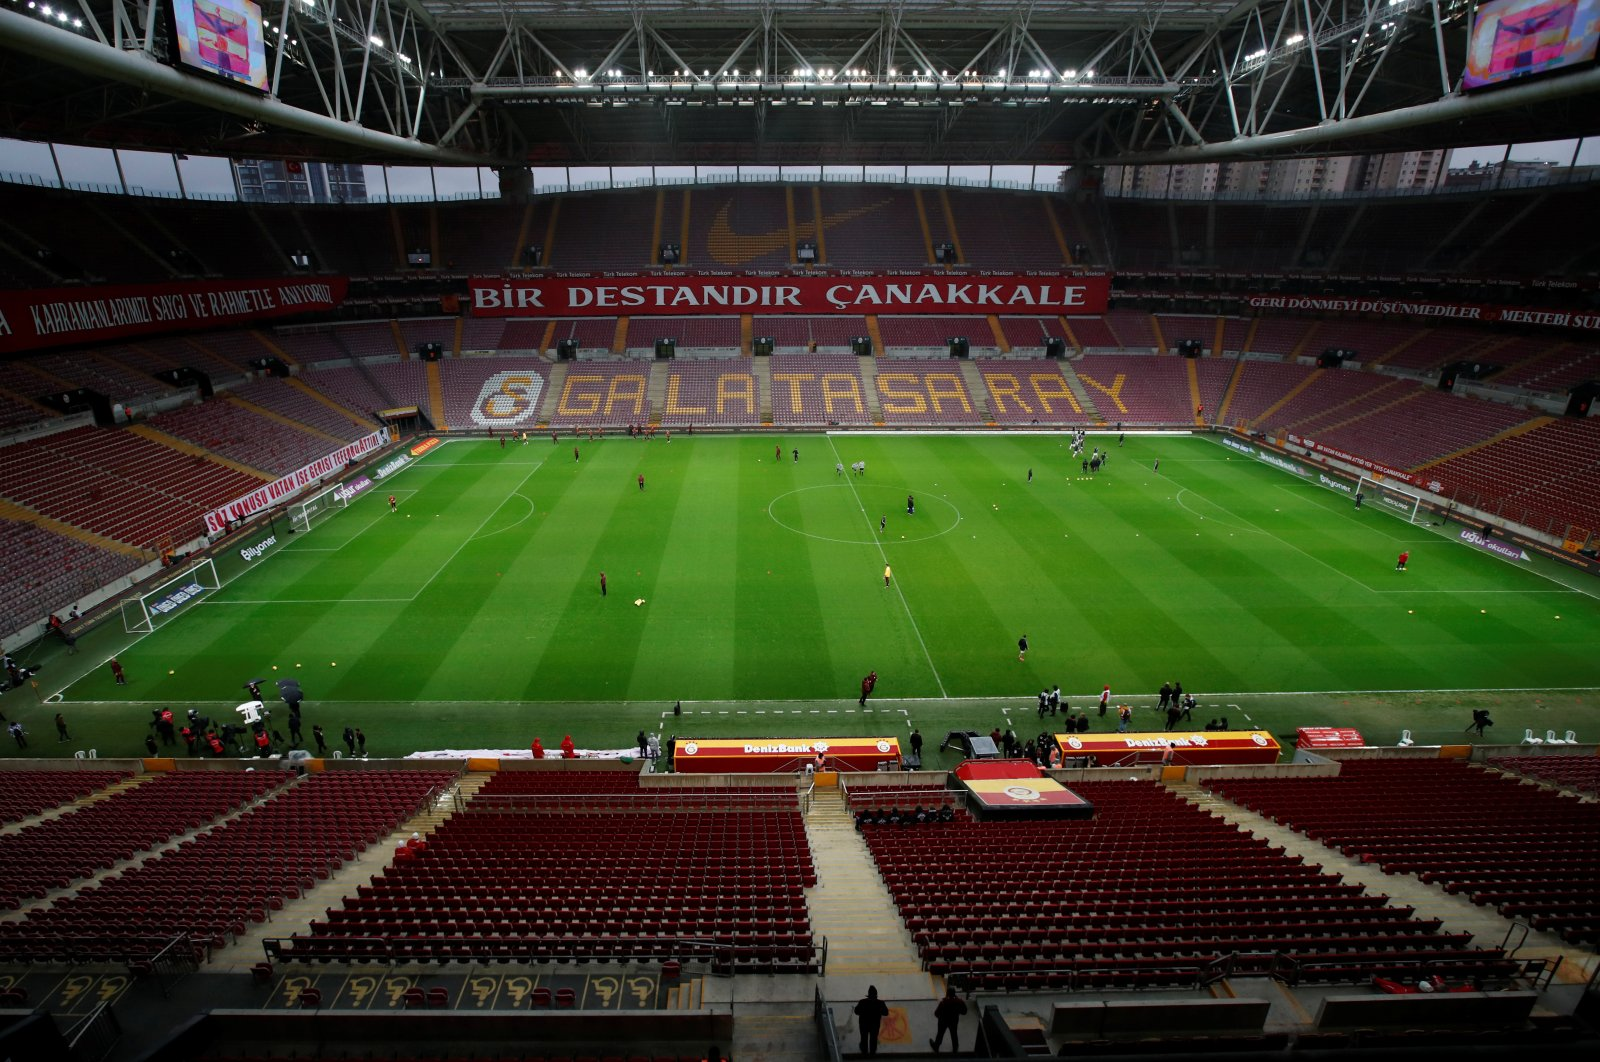 Stands were left empty during the Süper Lig match between Galatasaray and Beşiktaş as it was played behind closed doors due to the coronavirus outbreak, Istanbul, March 15, 2020. (Reuters Photo)